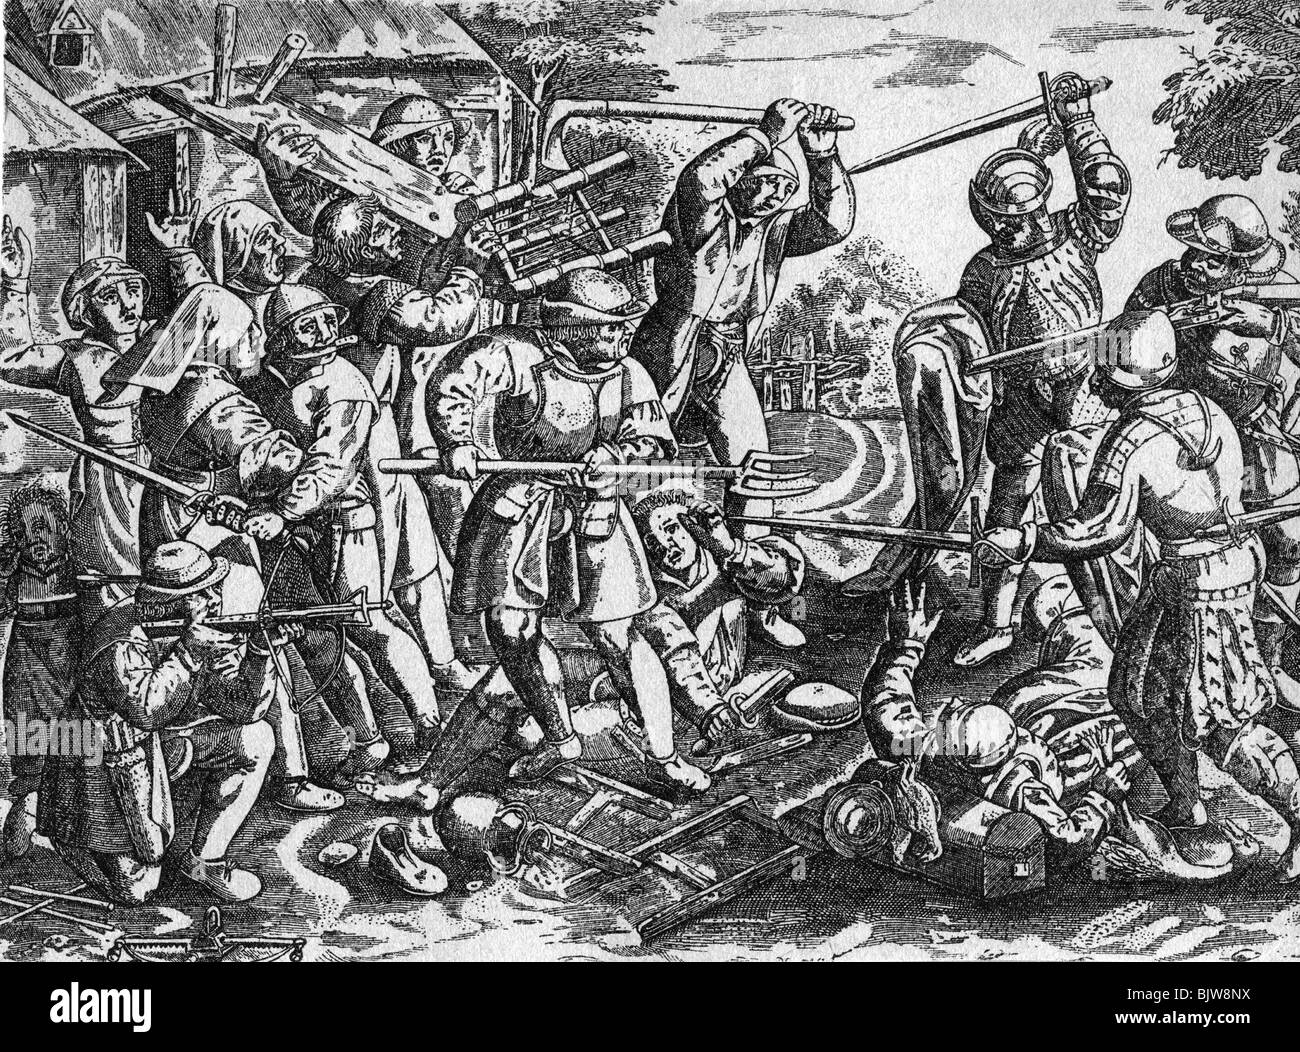 events, German Peasants' War, 1524 - 1526, soldiers attacking a farmstead,  copper engraving by Domenicus Custos (circa 1560 - 1612), 16th century,  historic, ...